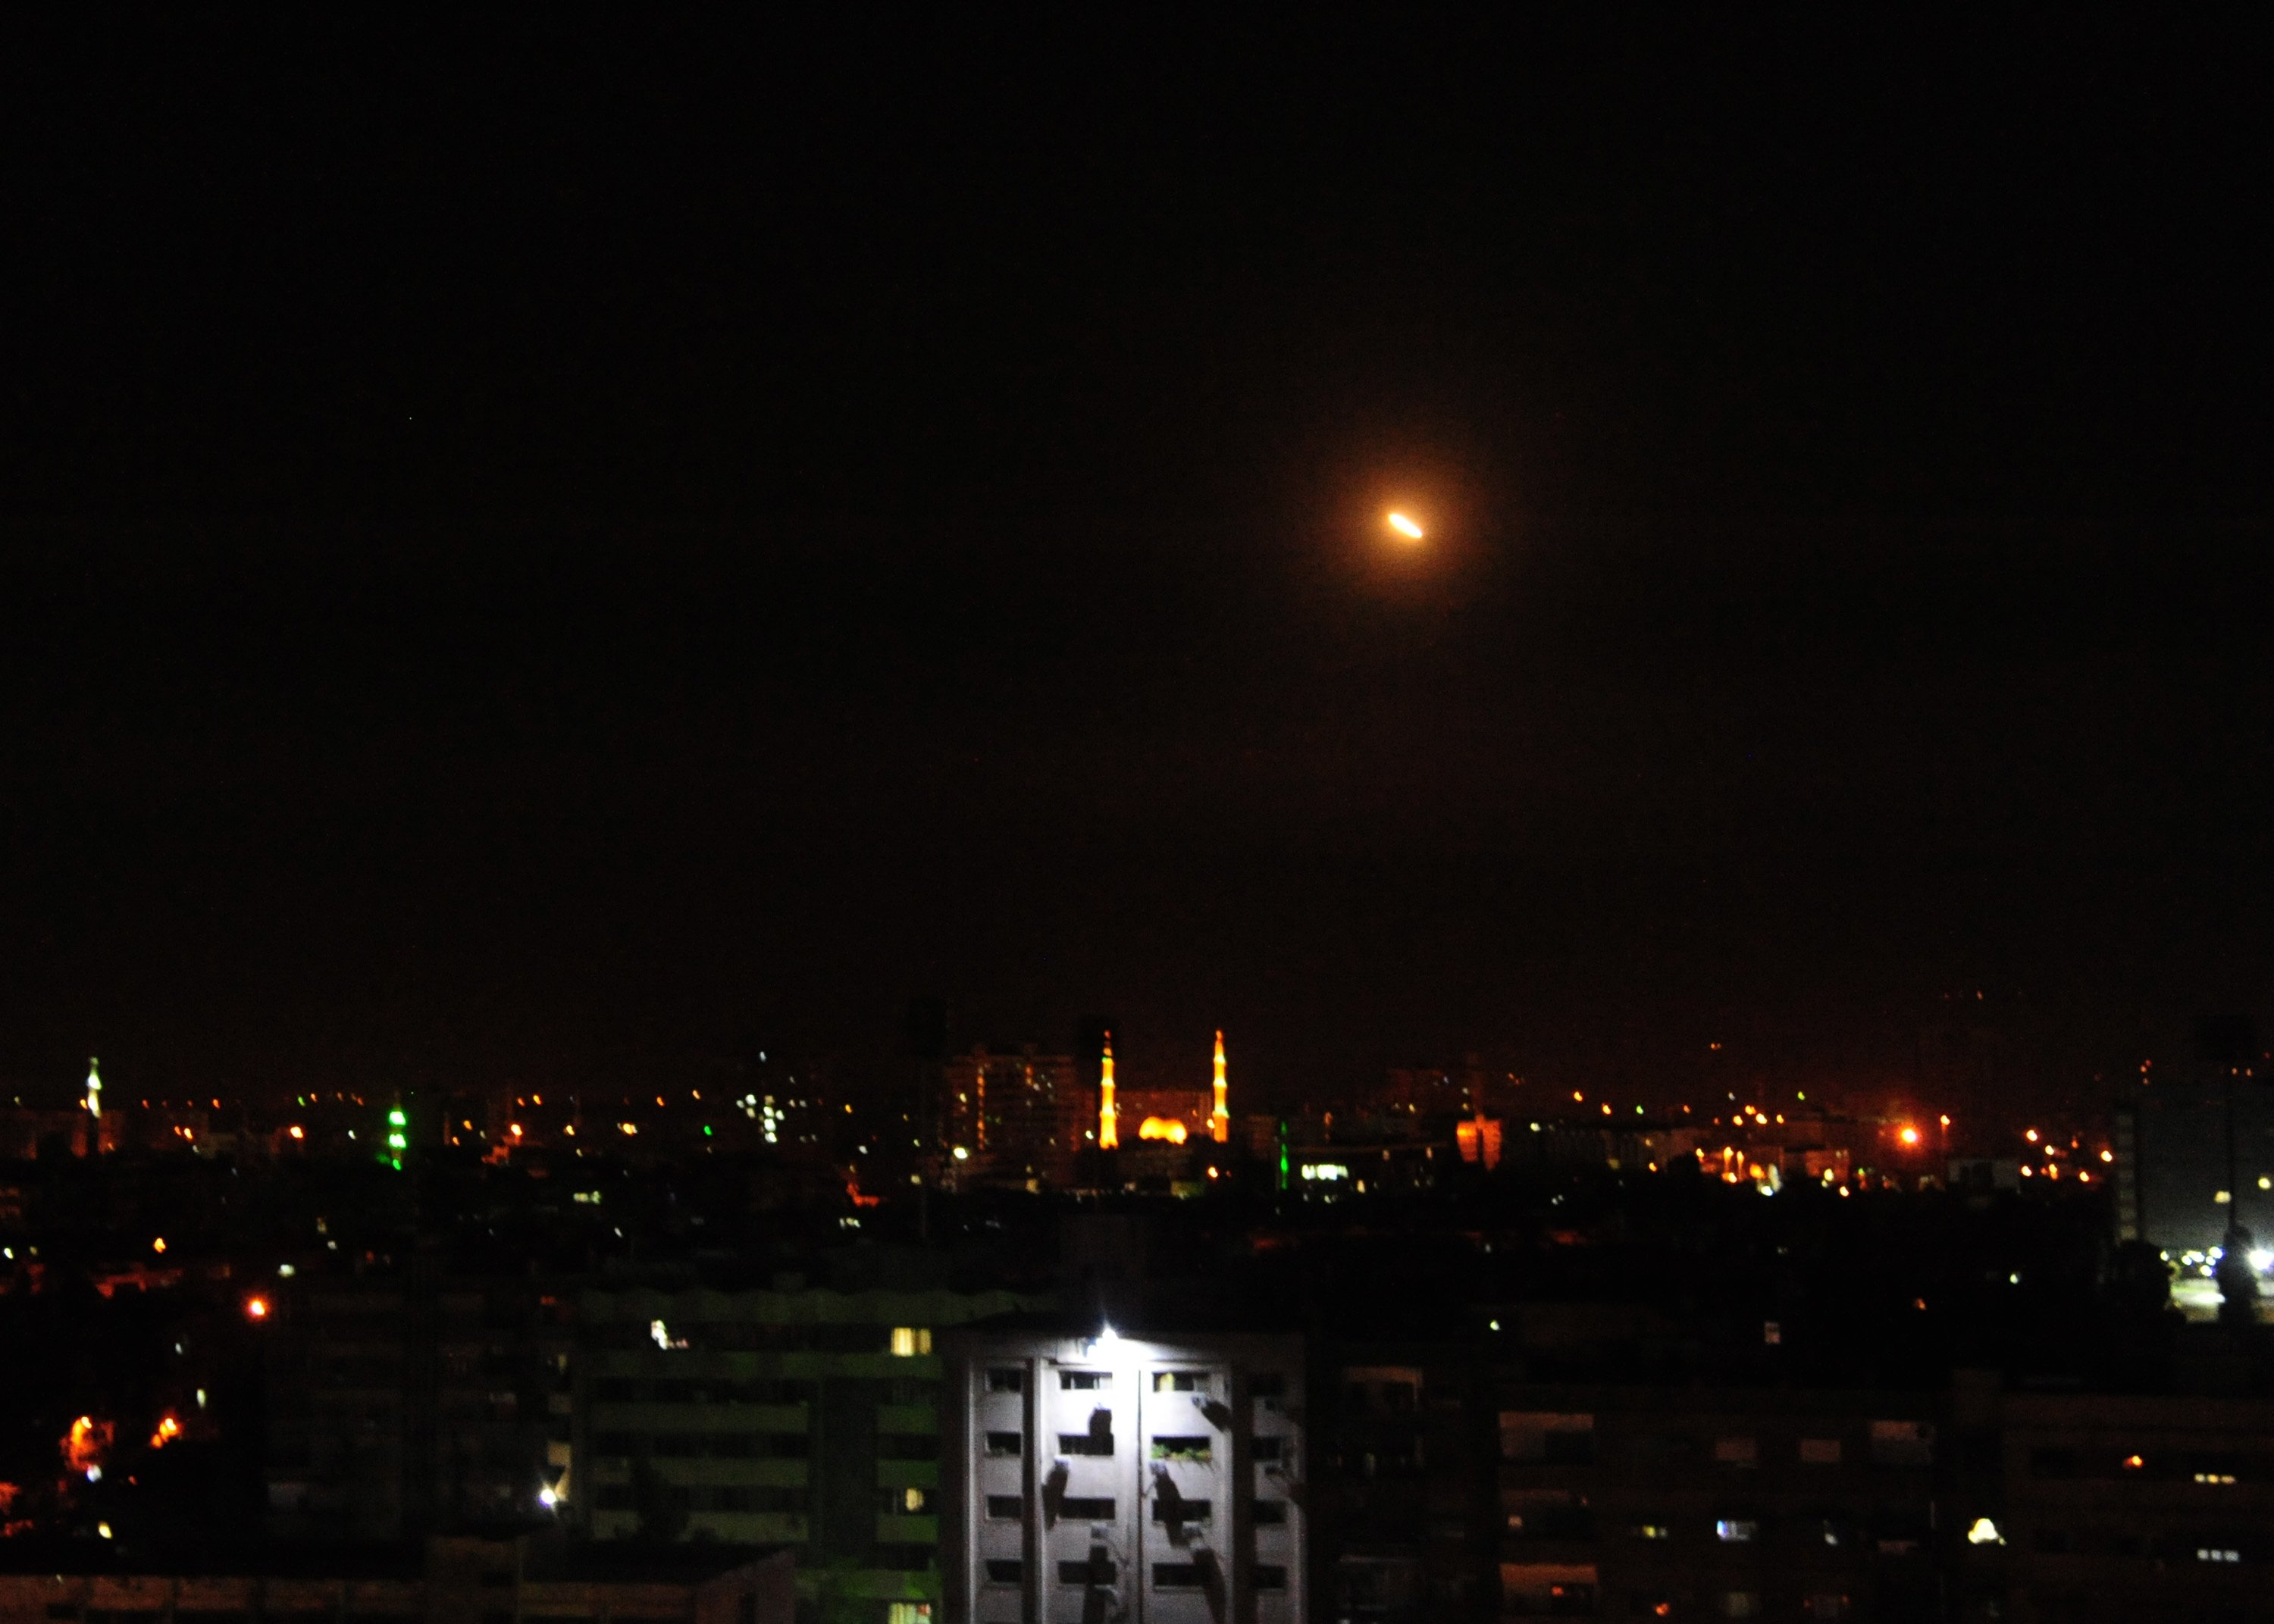 DAMASCUS, April 14, 2018  Surface-to-air missiles are seen over Syria's capital Damascus on April 14, 2018, as the Syrian air defenses were responding to U.S. attacks. The U.S. started military actions against Damascus before daybreak Saturday as loud explosions were heard with ''red dots'' seen flying from earth to the sky, reported Syrian state TV and Xinhua reporters in Damascus.  yy), Image: 368487686, License: Rights-managed, Restrictions: , Model Release: no, Credit line: Profimedia, Zuma Press - News